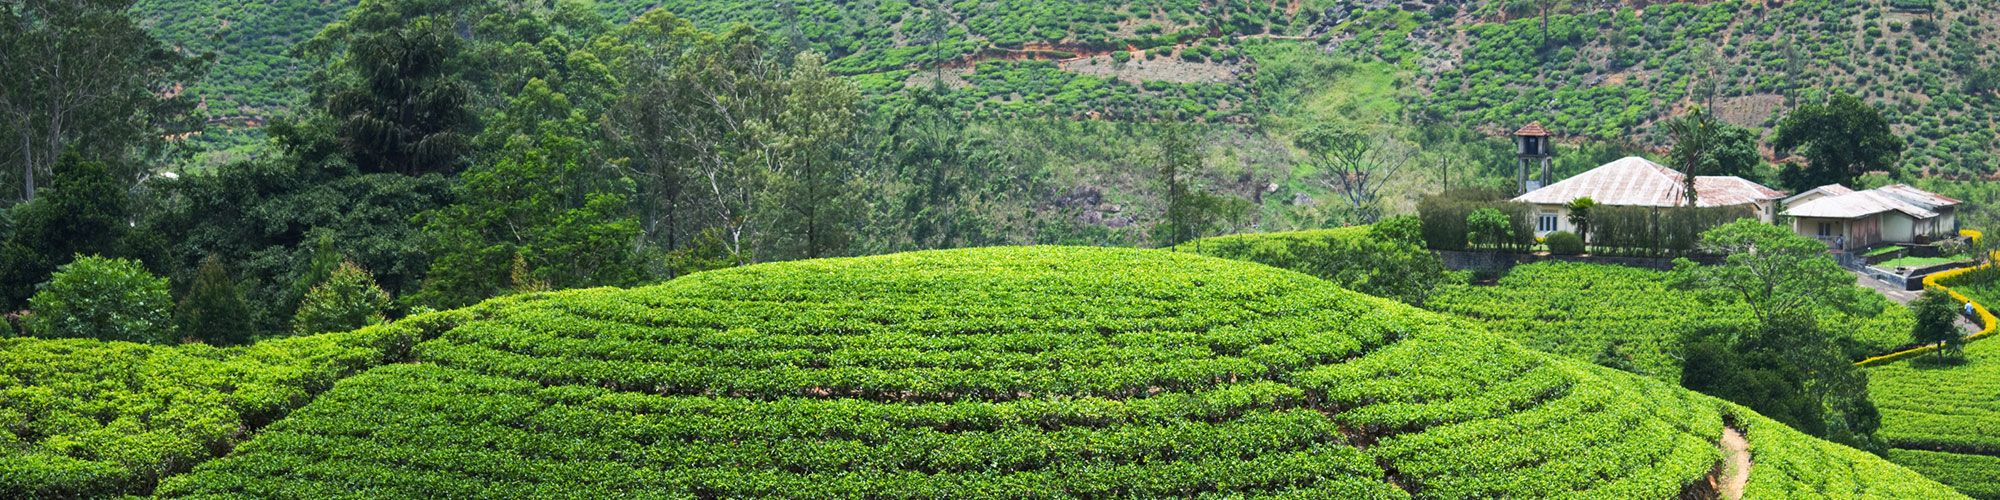 Sri Lanka, Tea Estate, Bandarawela